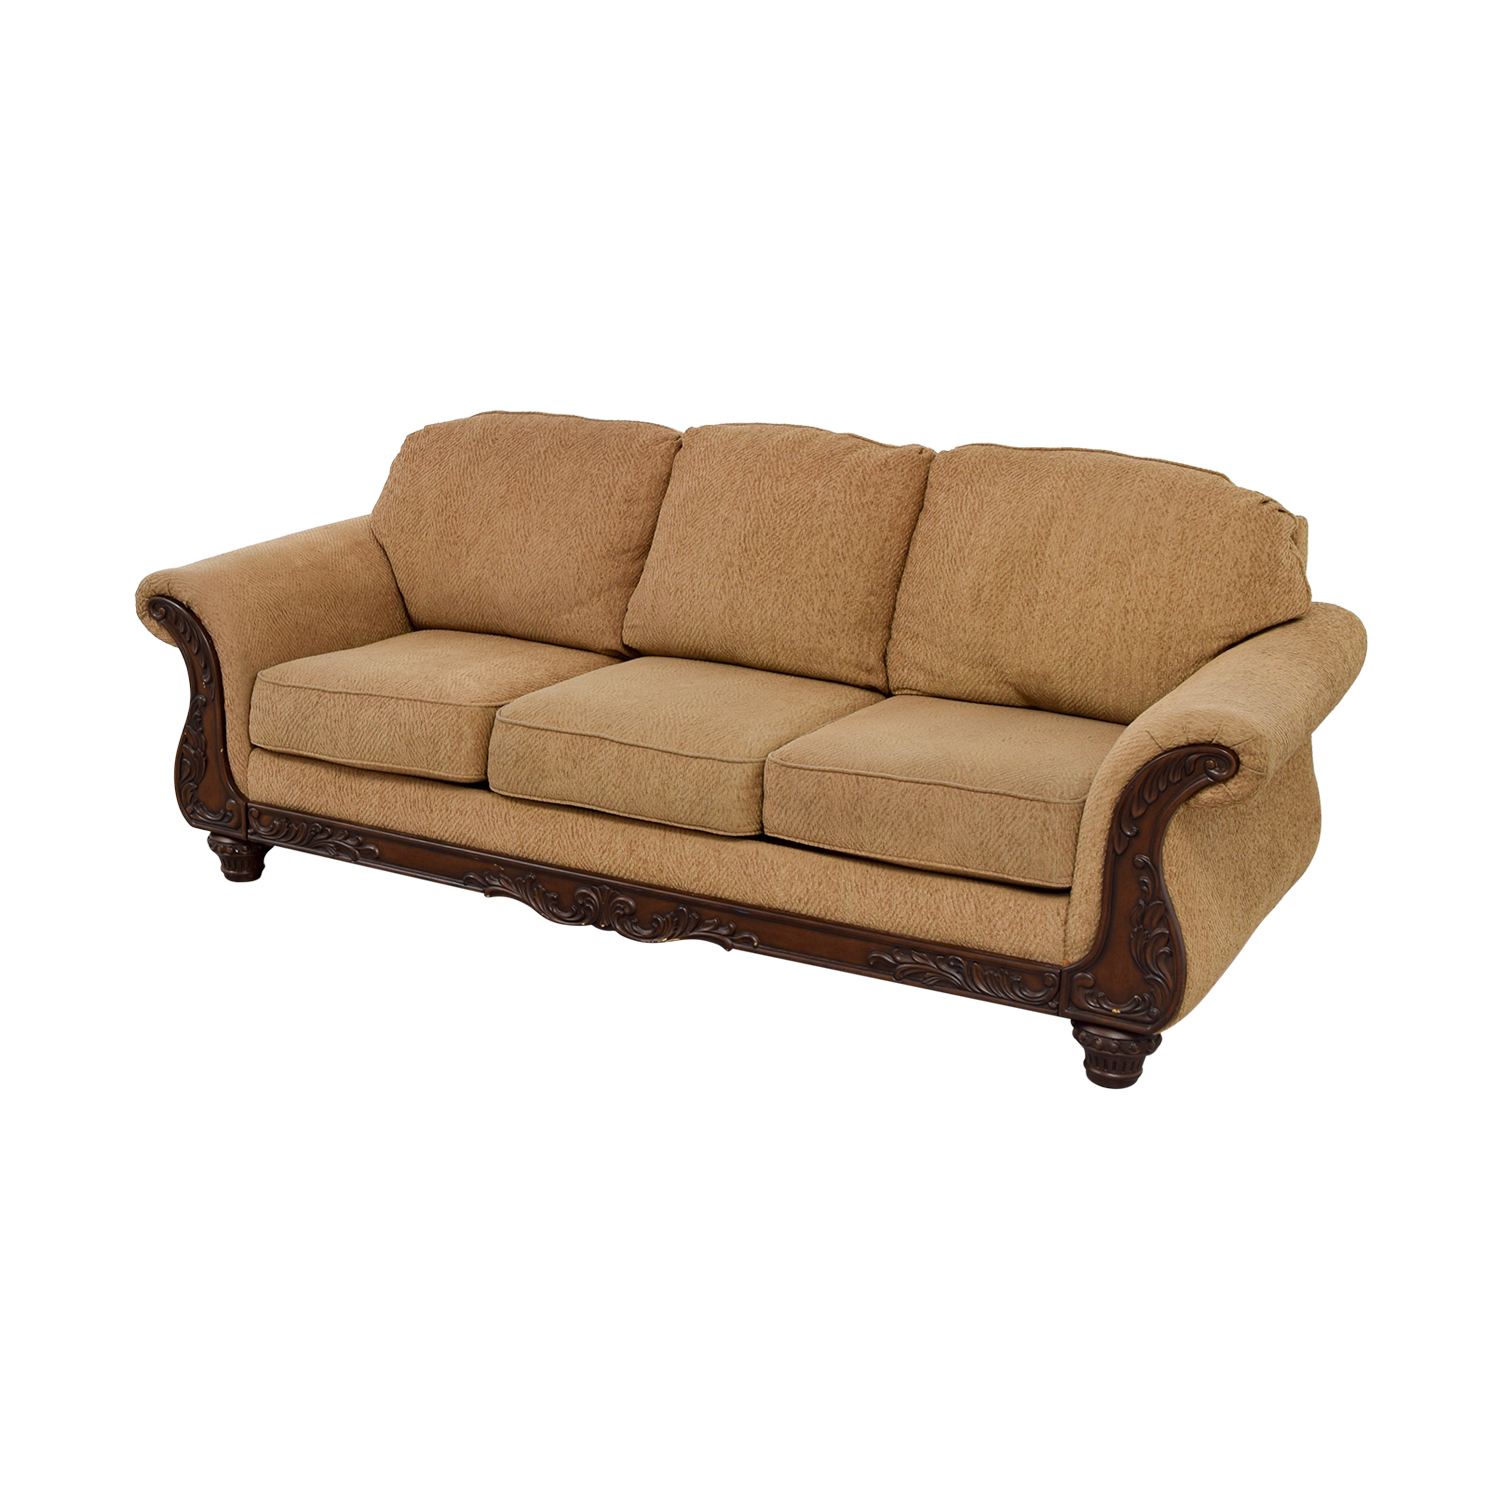 Off haverty s gold carved wood couch sofas